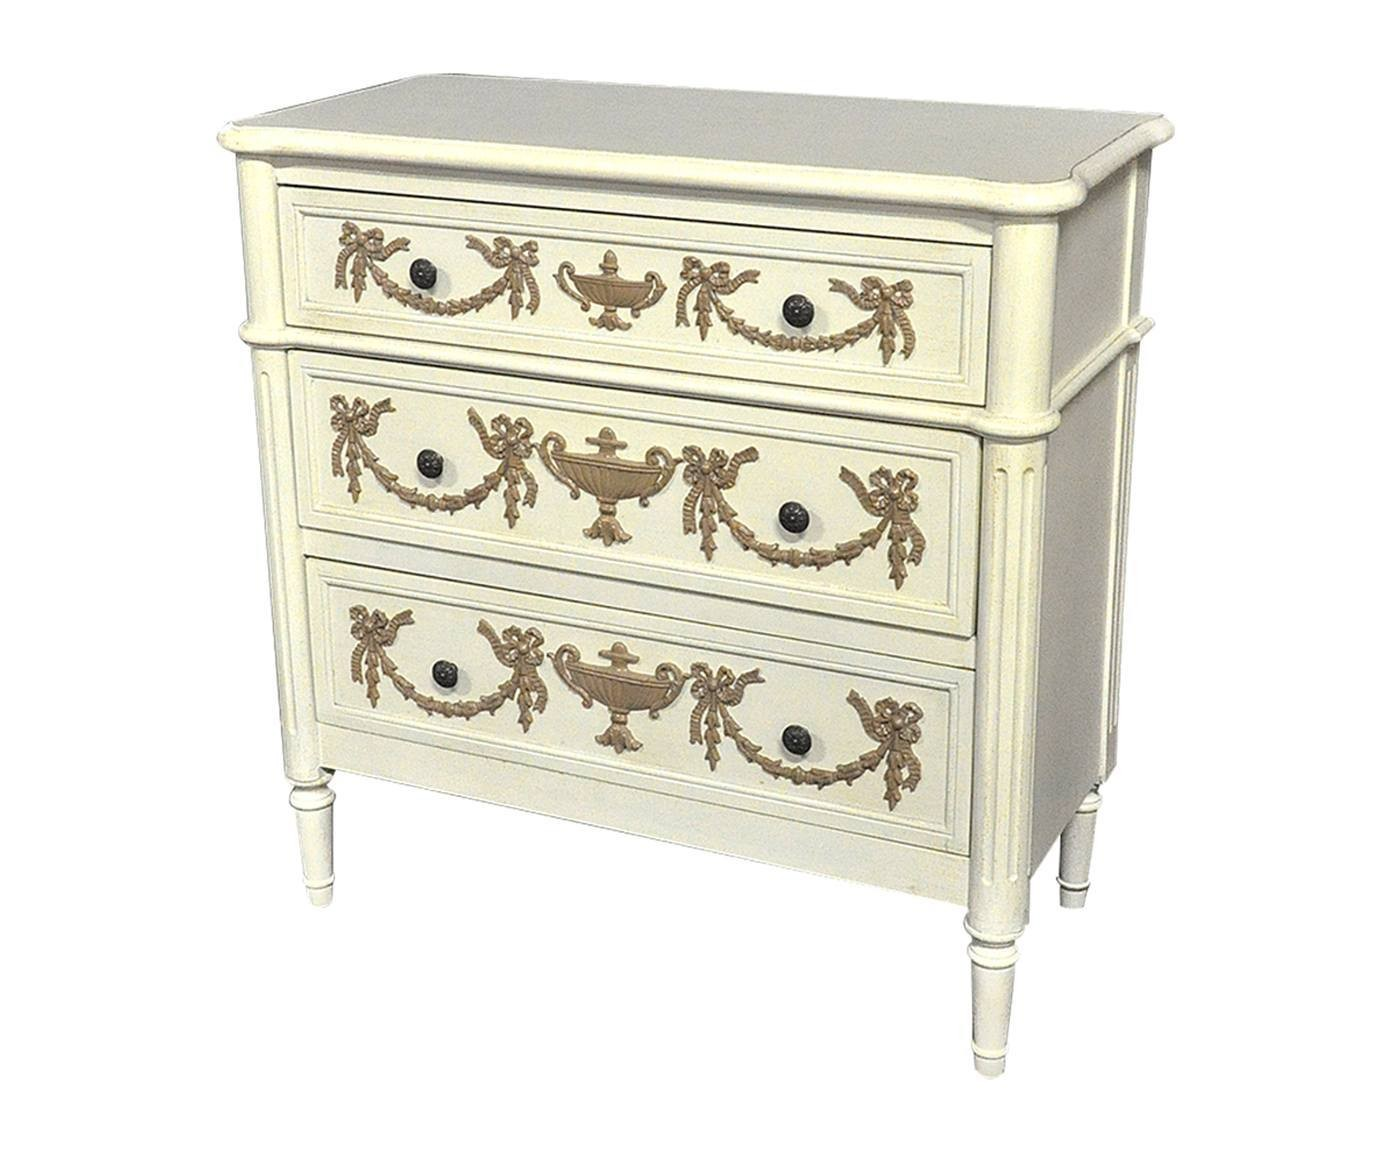 commode louis xvi blanche moulures chocolat demeure et jardin. Black Bedroom Furniture Sets. Home Design Ideas